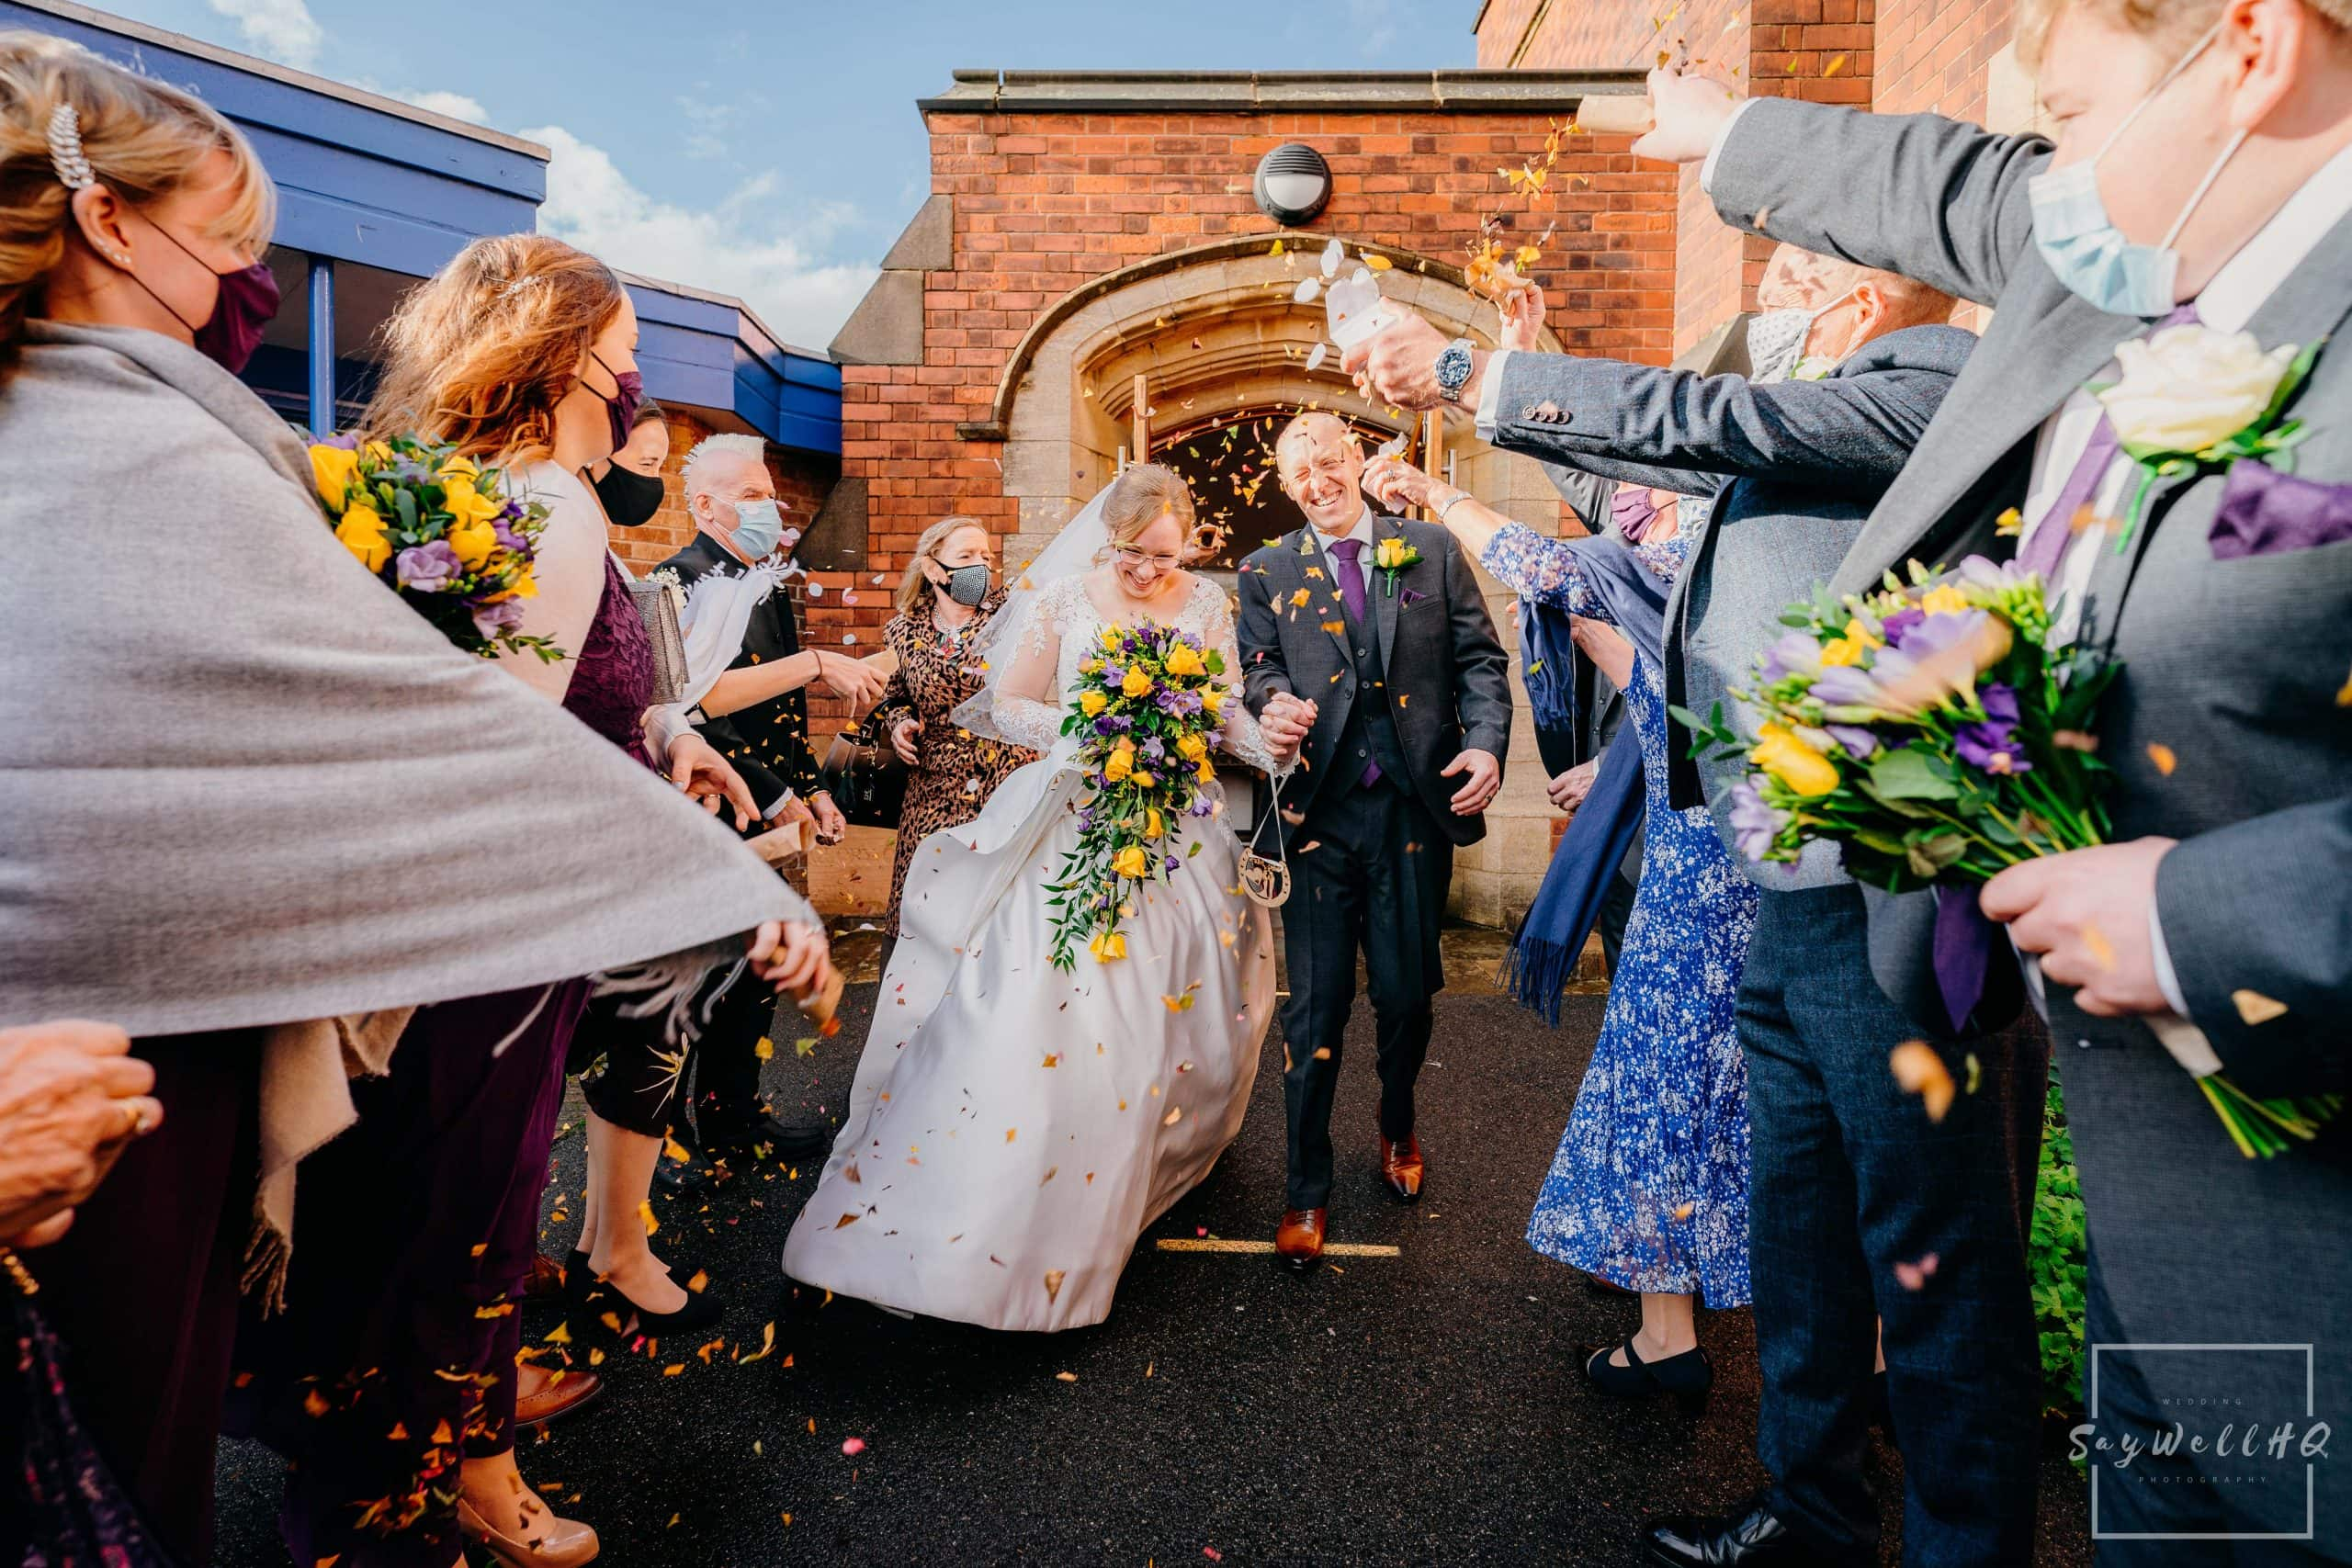 Bride and Groom get covered in Confetti after their micro wedding at St Judes Church in Mapperley Nottingham